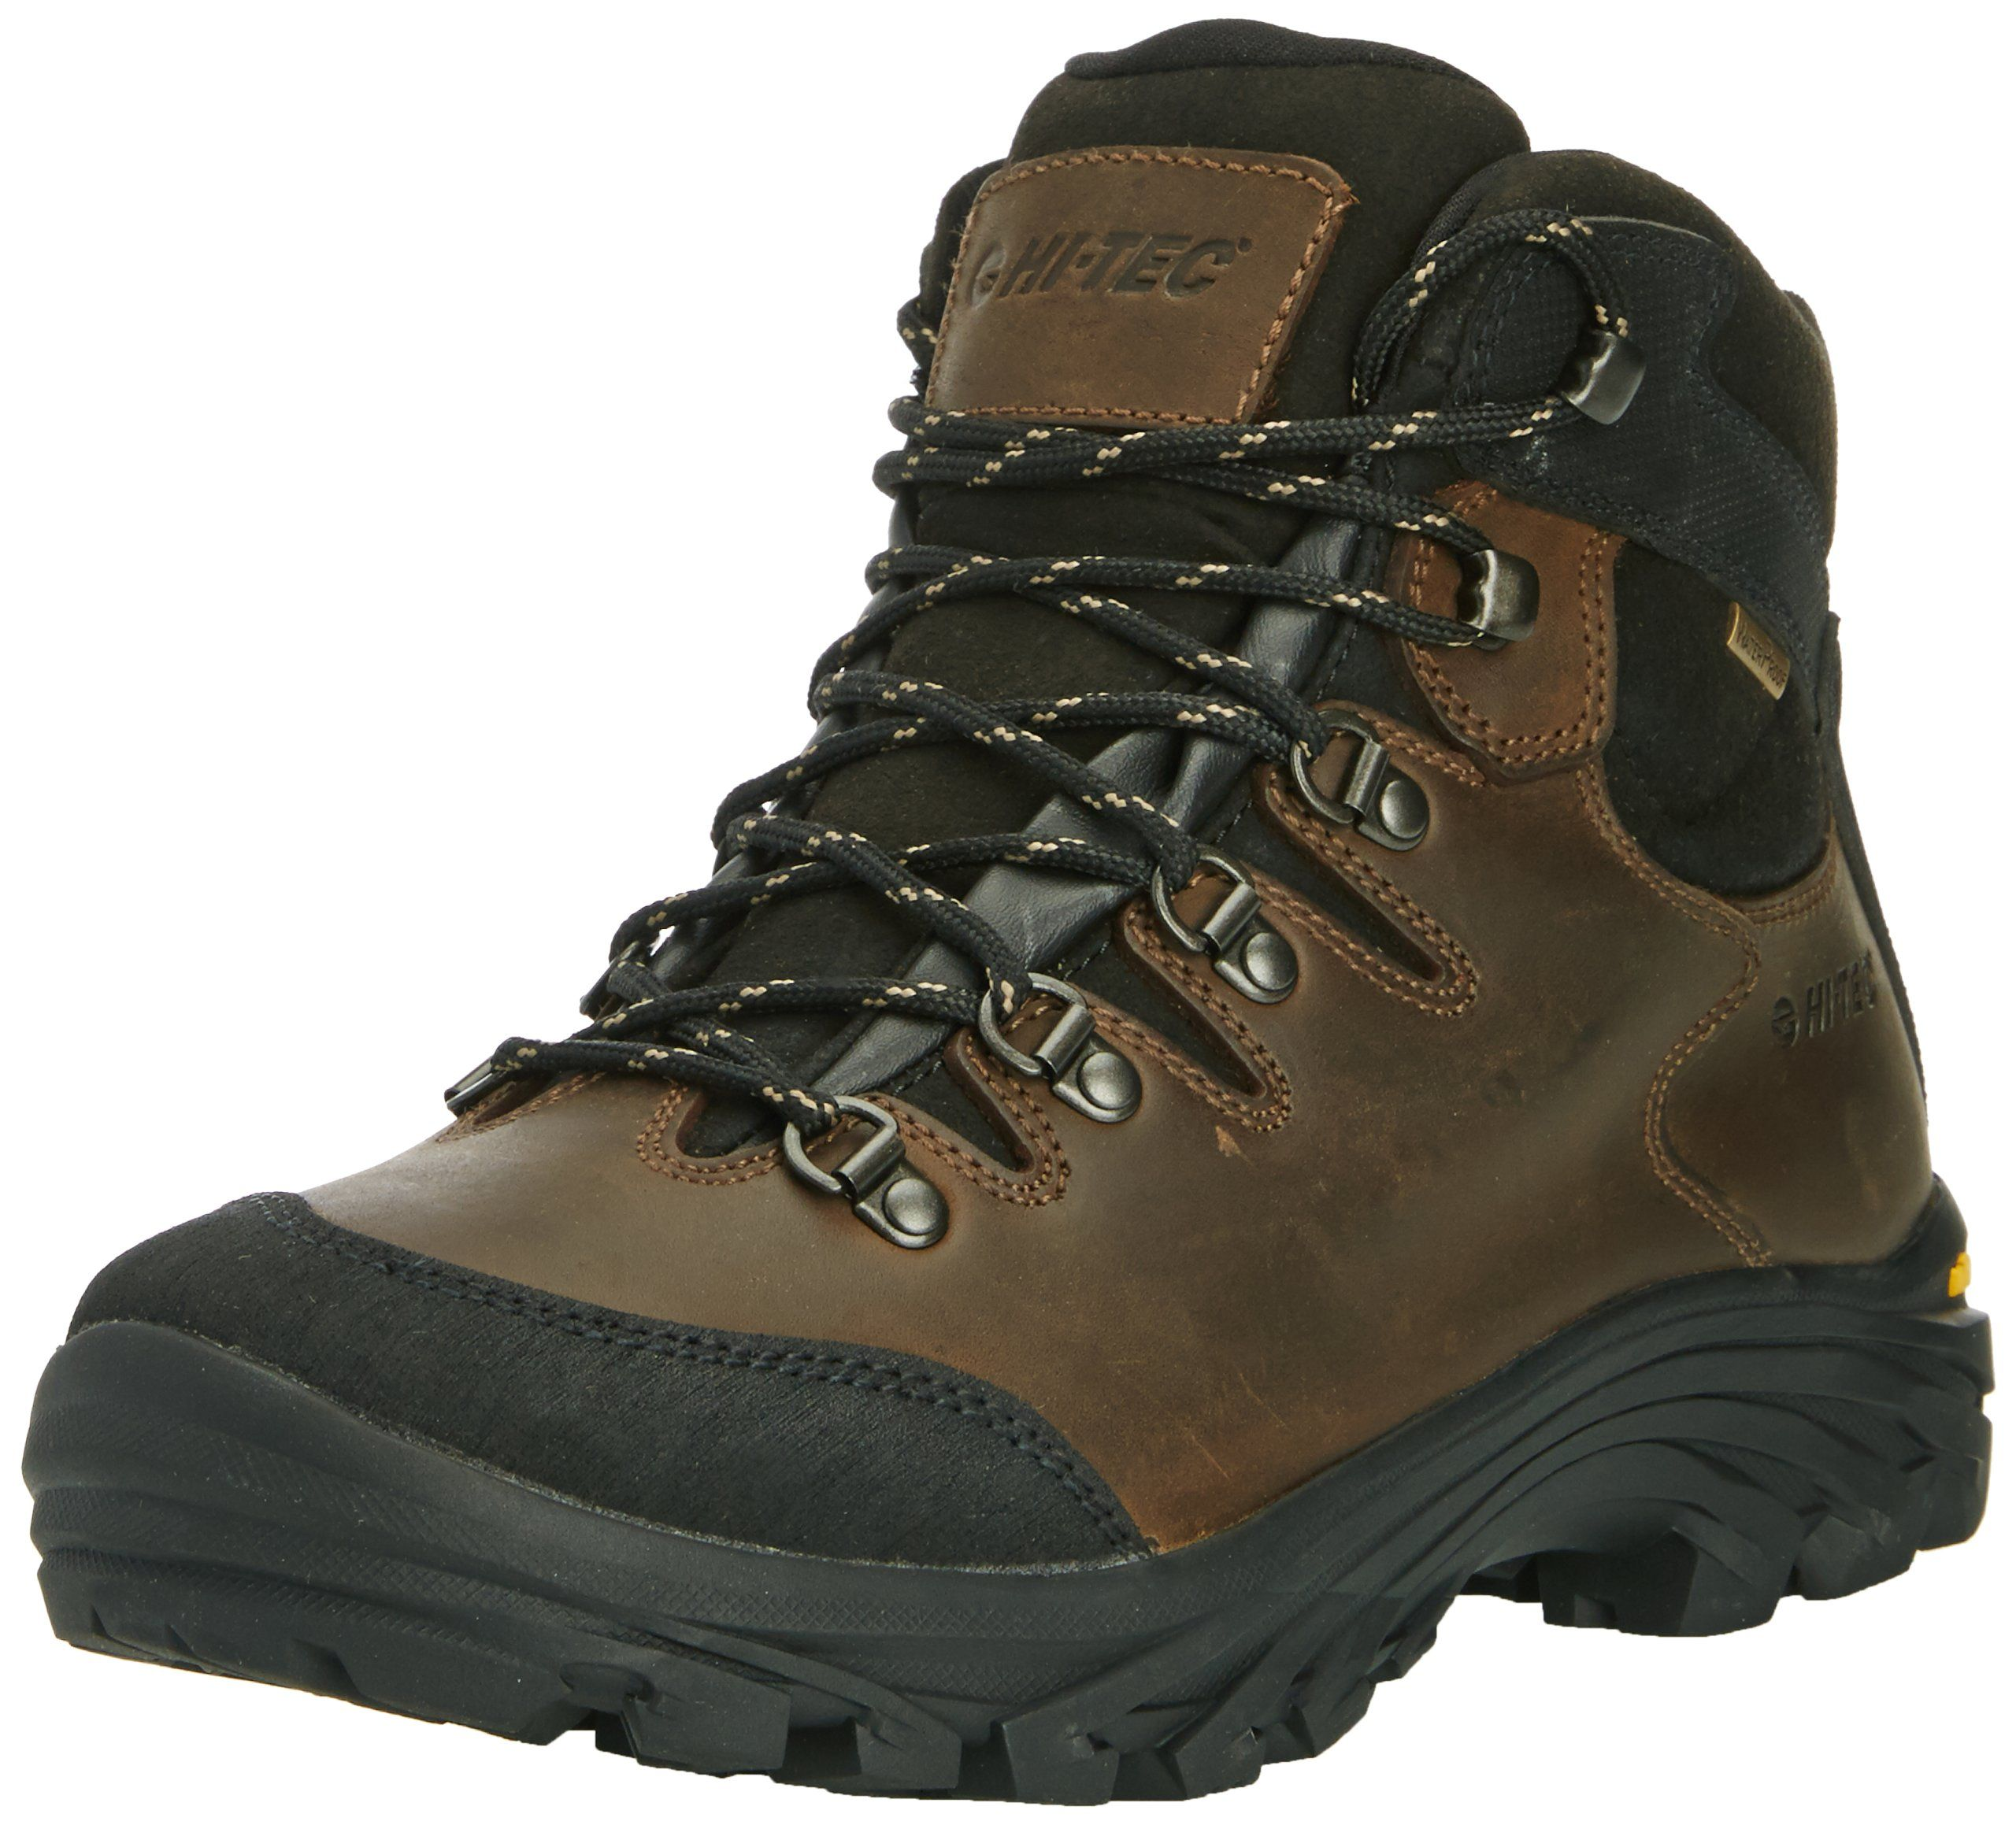 Hi-Tec Altitude Waterproof, Men's Hiking Boots: Amazon.co.uk: